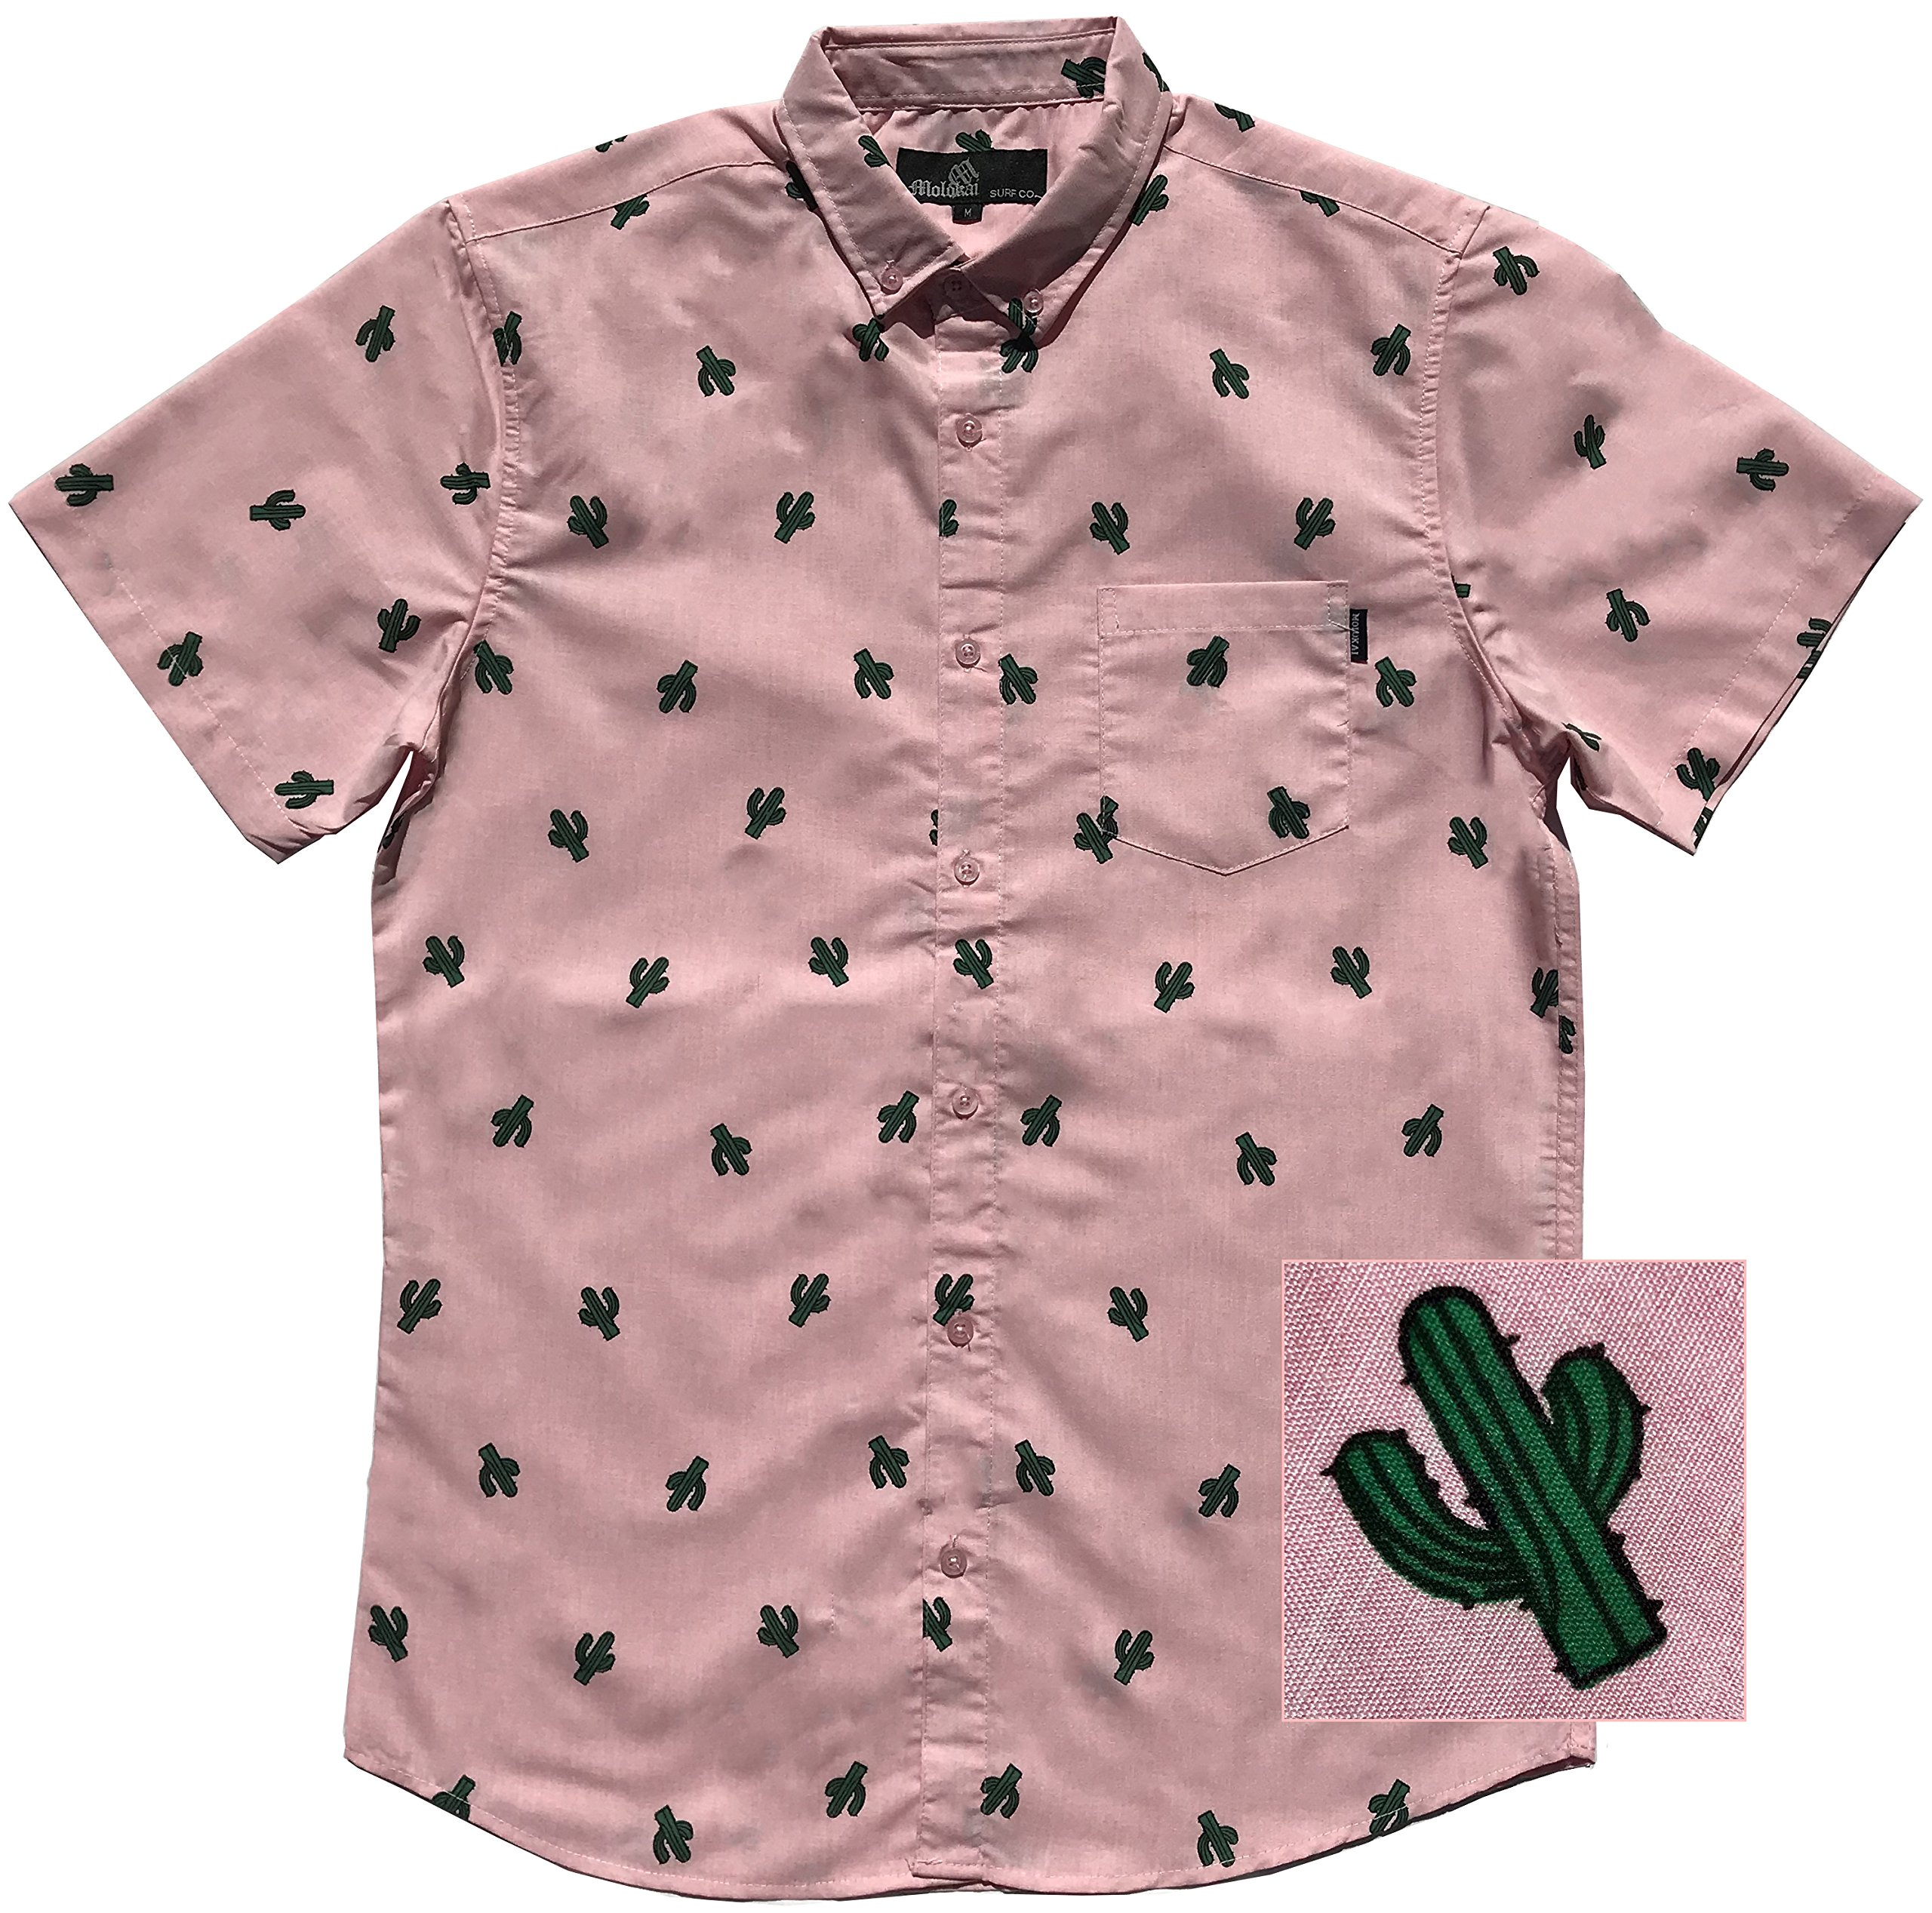 88d192ef M MOLOKAI SURF Official Molokai Button up Slim Fit Hawaiian Short Sleeve  Shirts